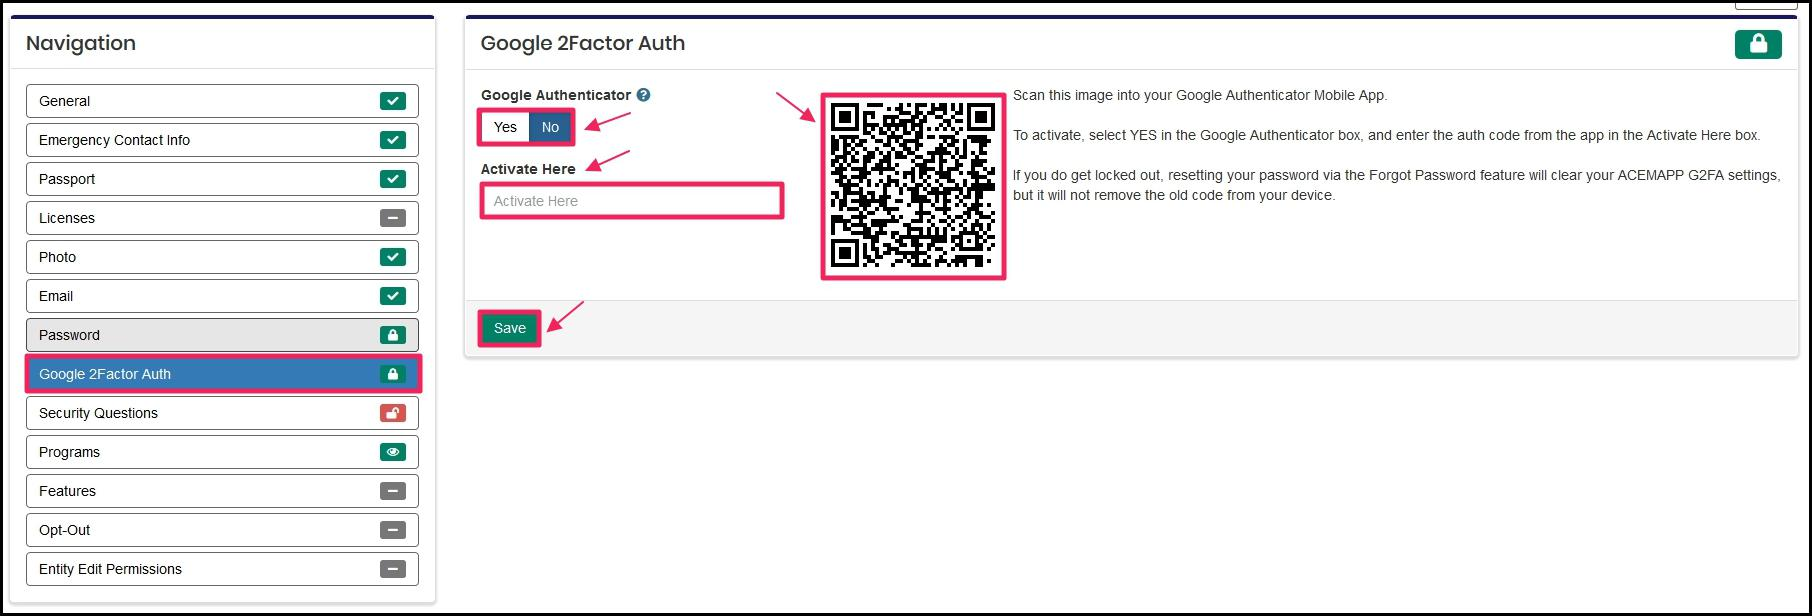 Image pointing to Google 2Factor Auth tab under Navigation panel, the Google Authenticator toggle set to No versus Yes, the barcode to scan into the App and the Activate Here required field